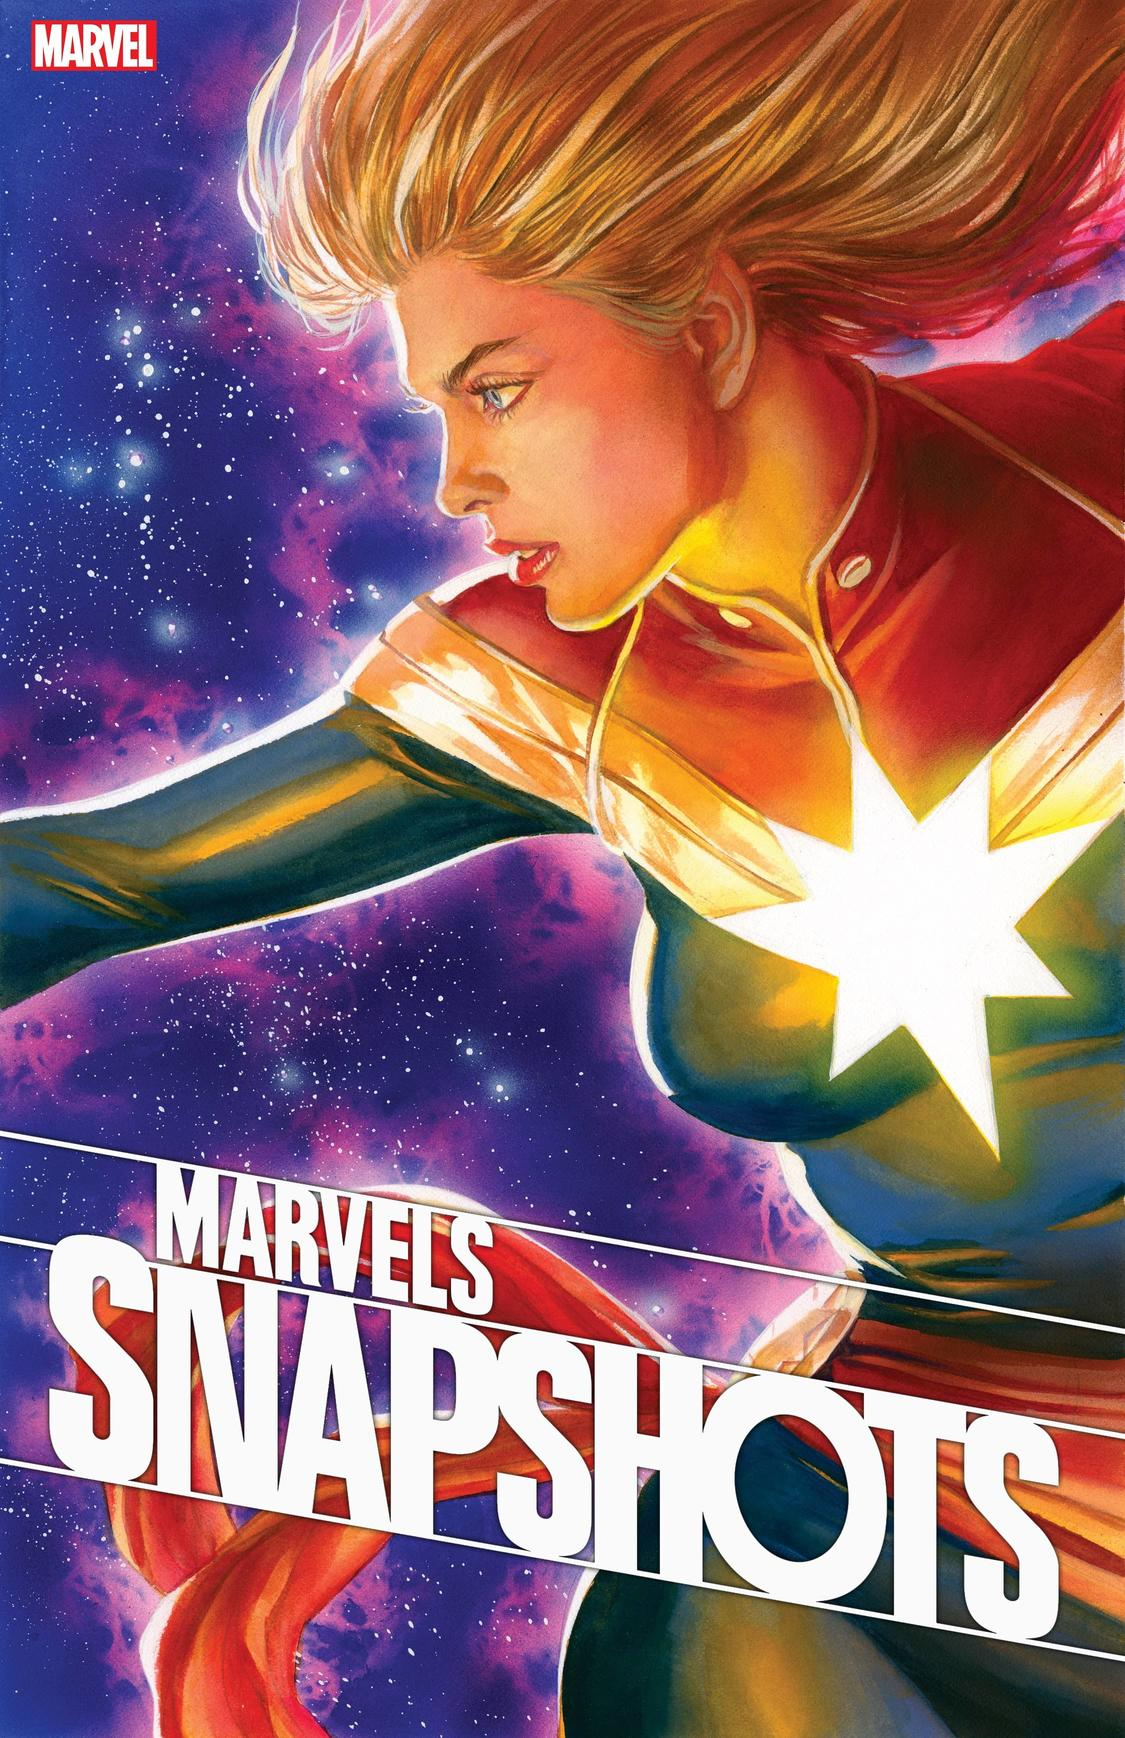 Marvels Snapshots: Captain Marvel #1 written by Mark Waid with art by Colleen Doran and cover by Alex Ross